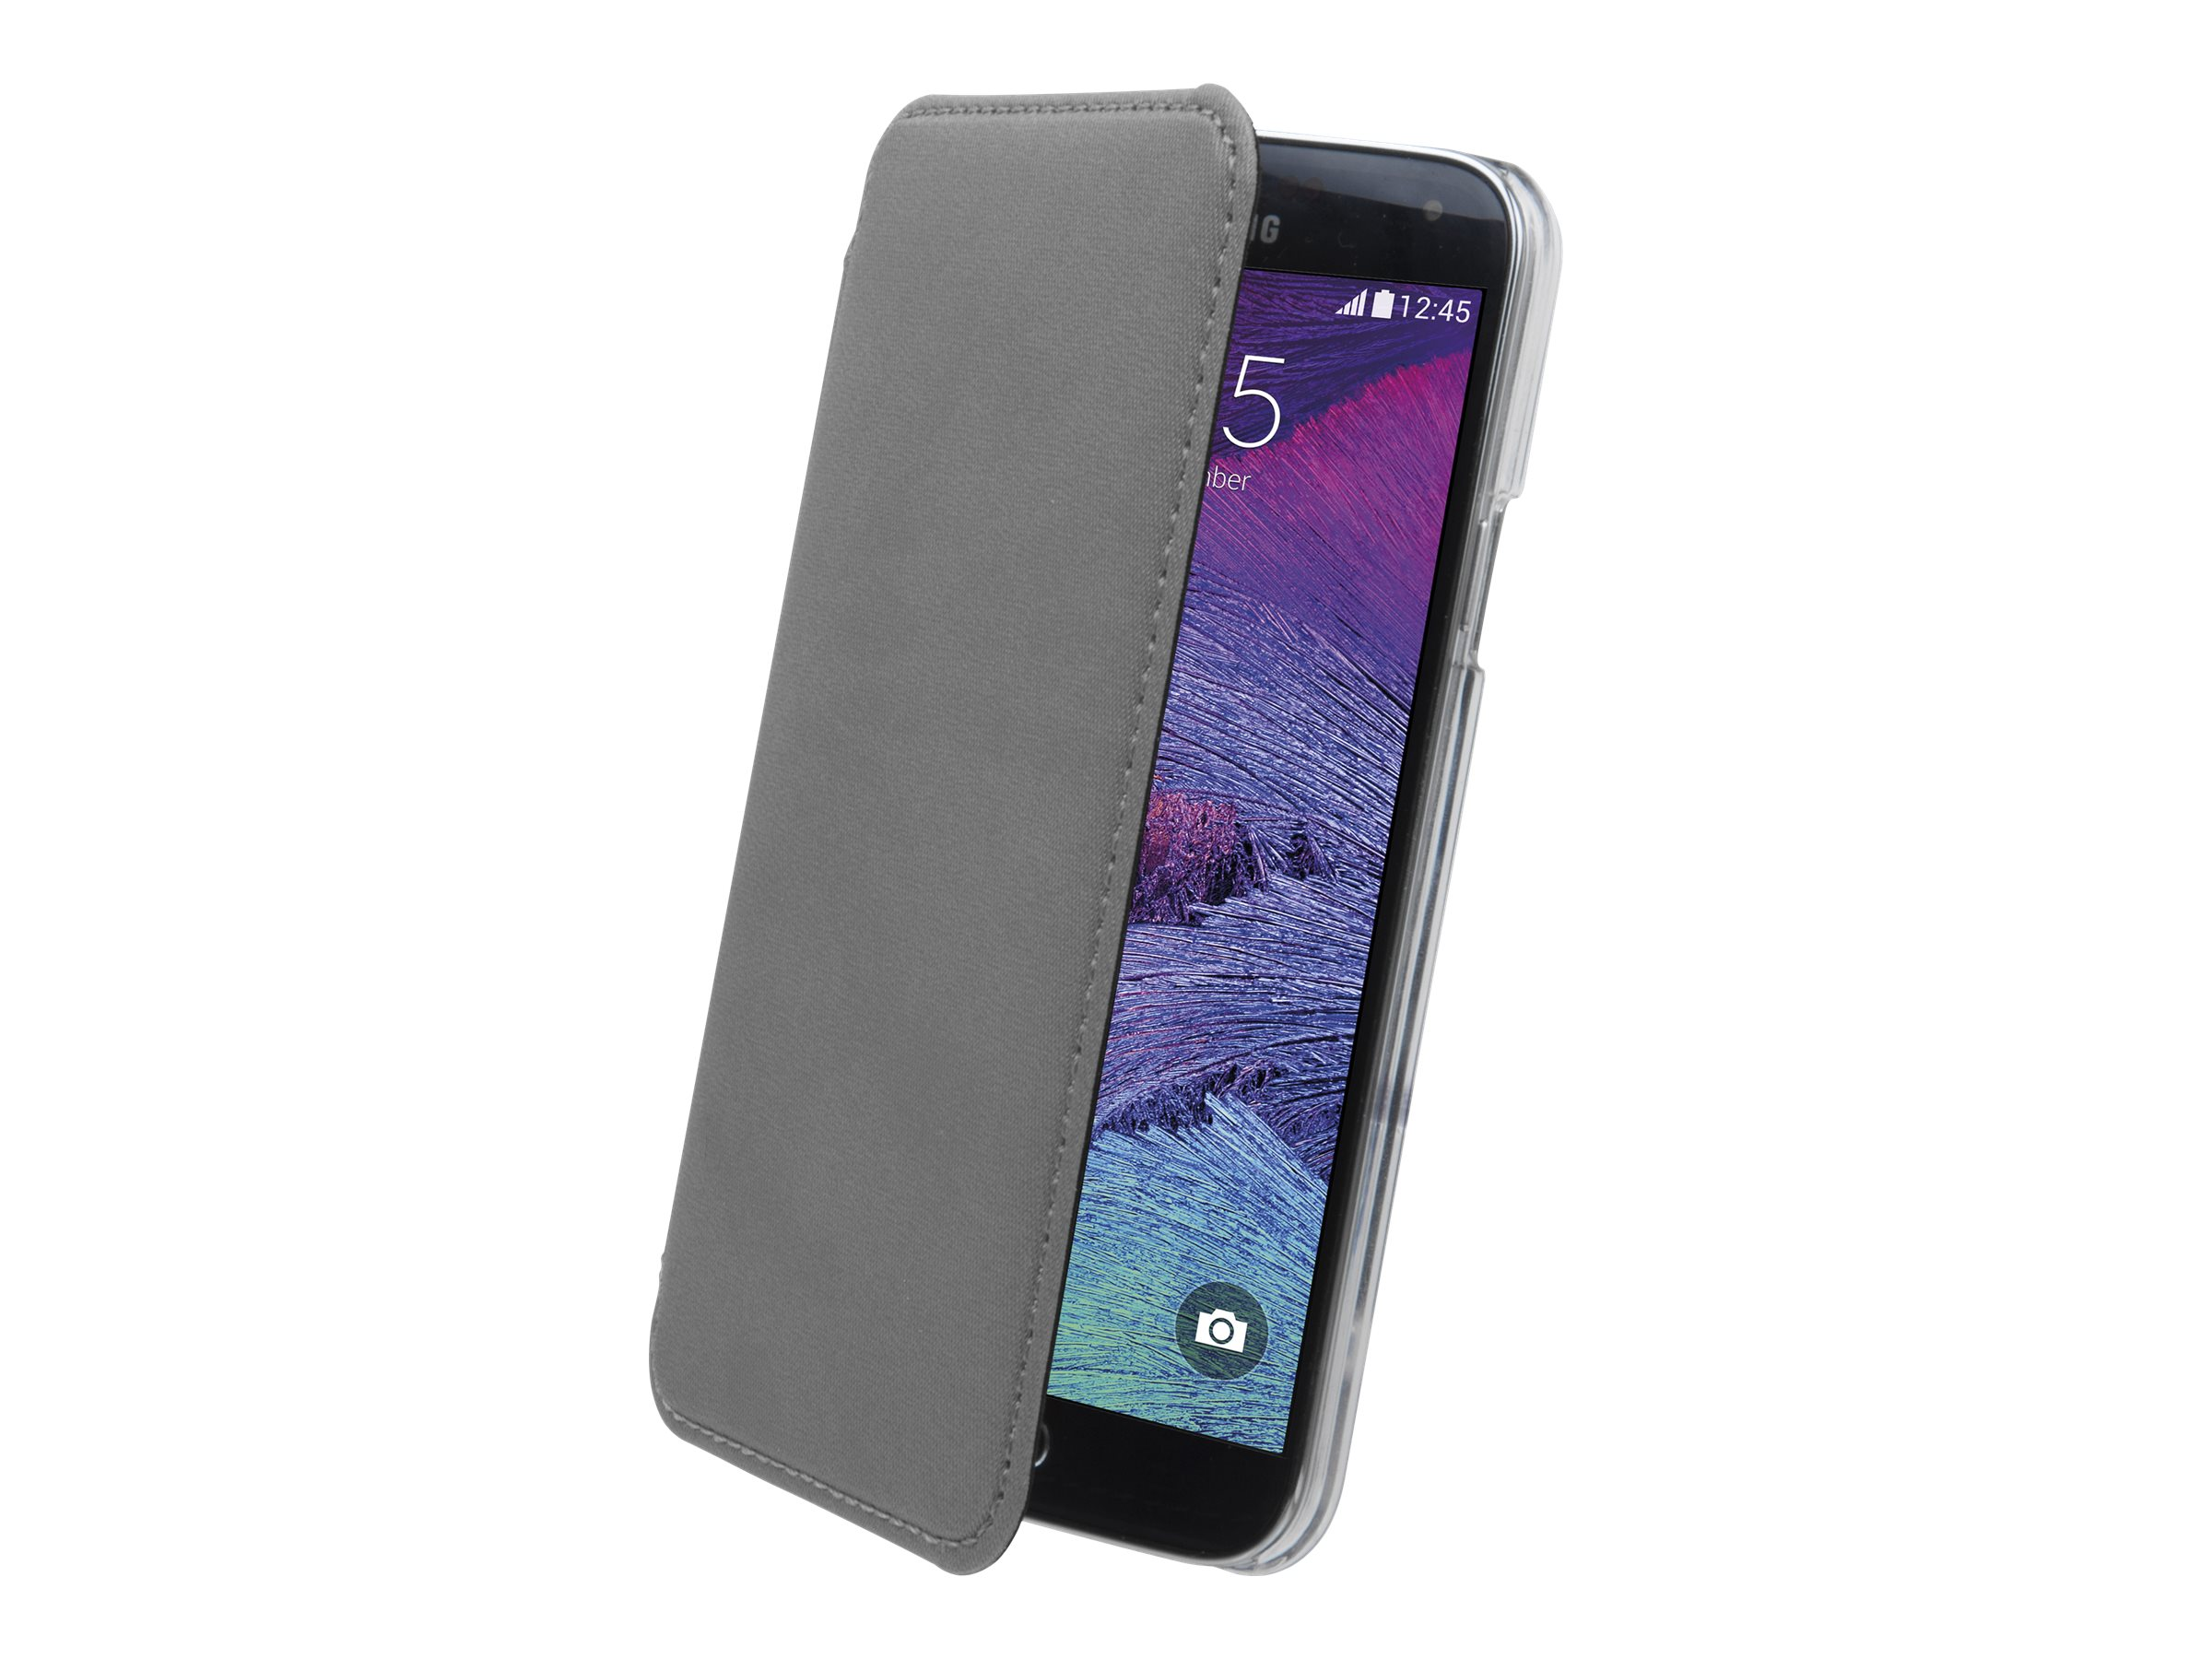 Muvit Made in Paris Crystal Folio - Protection à rabat pour Samsung Galaxy Note 4 - gris